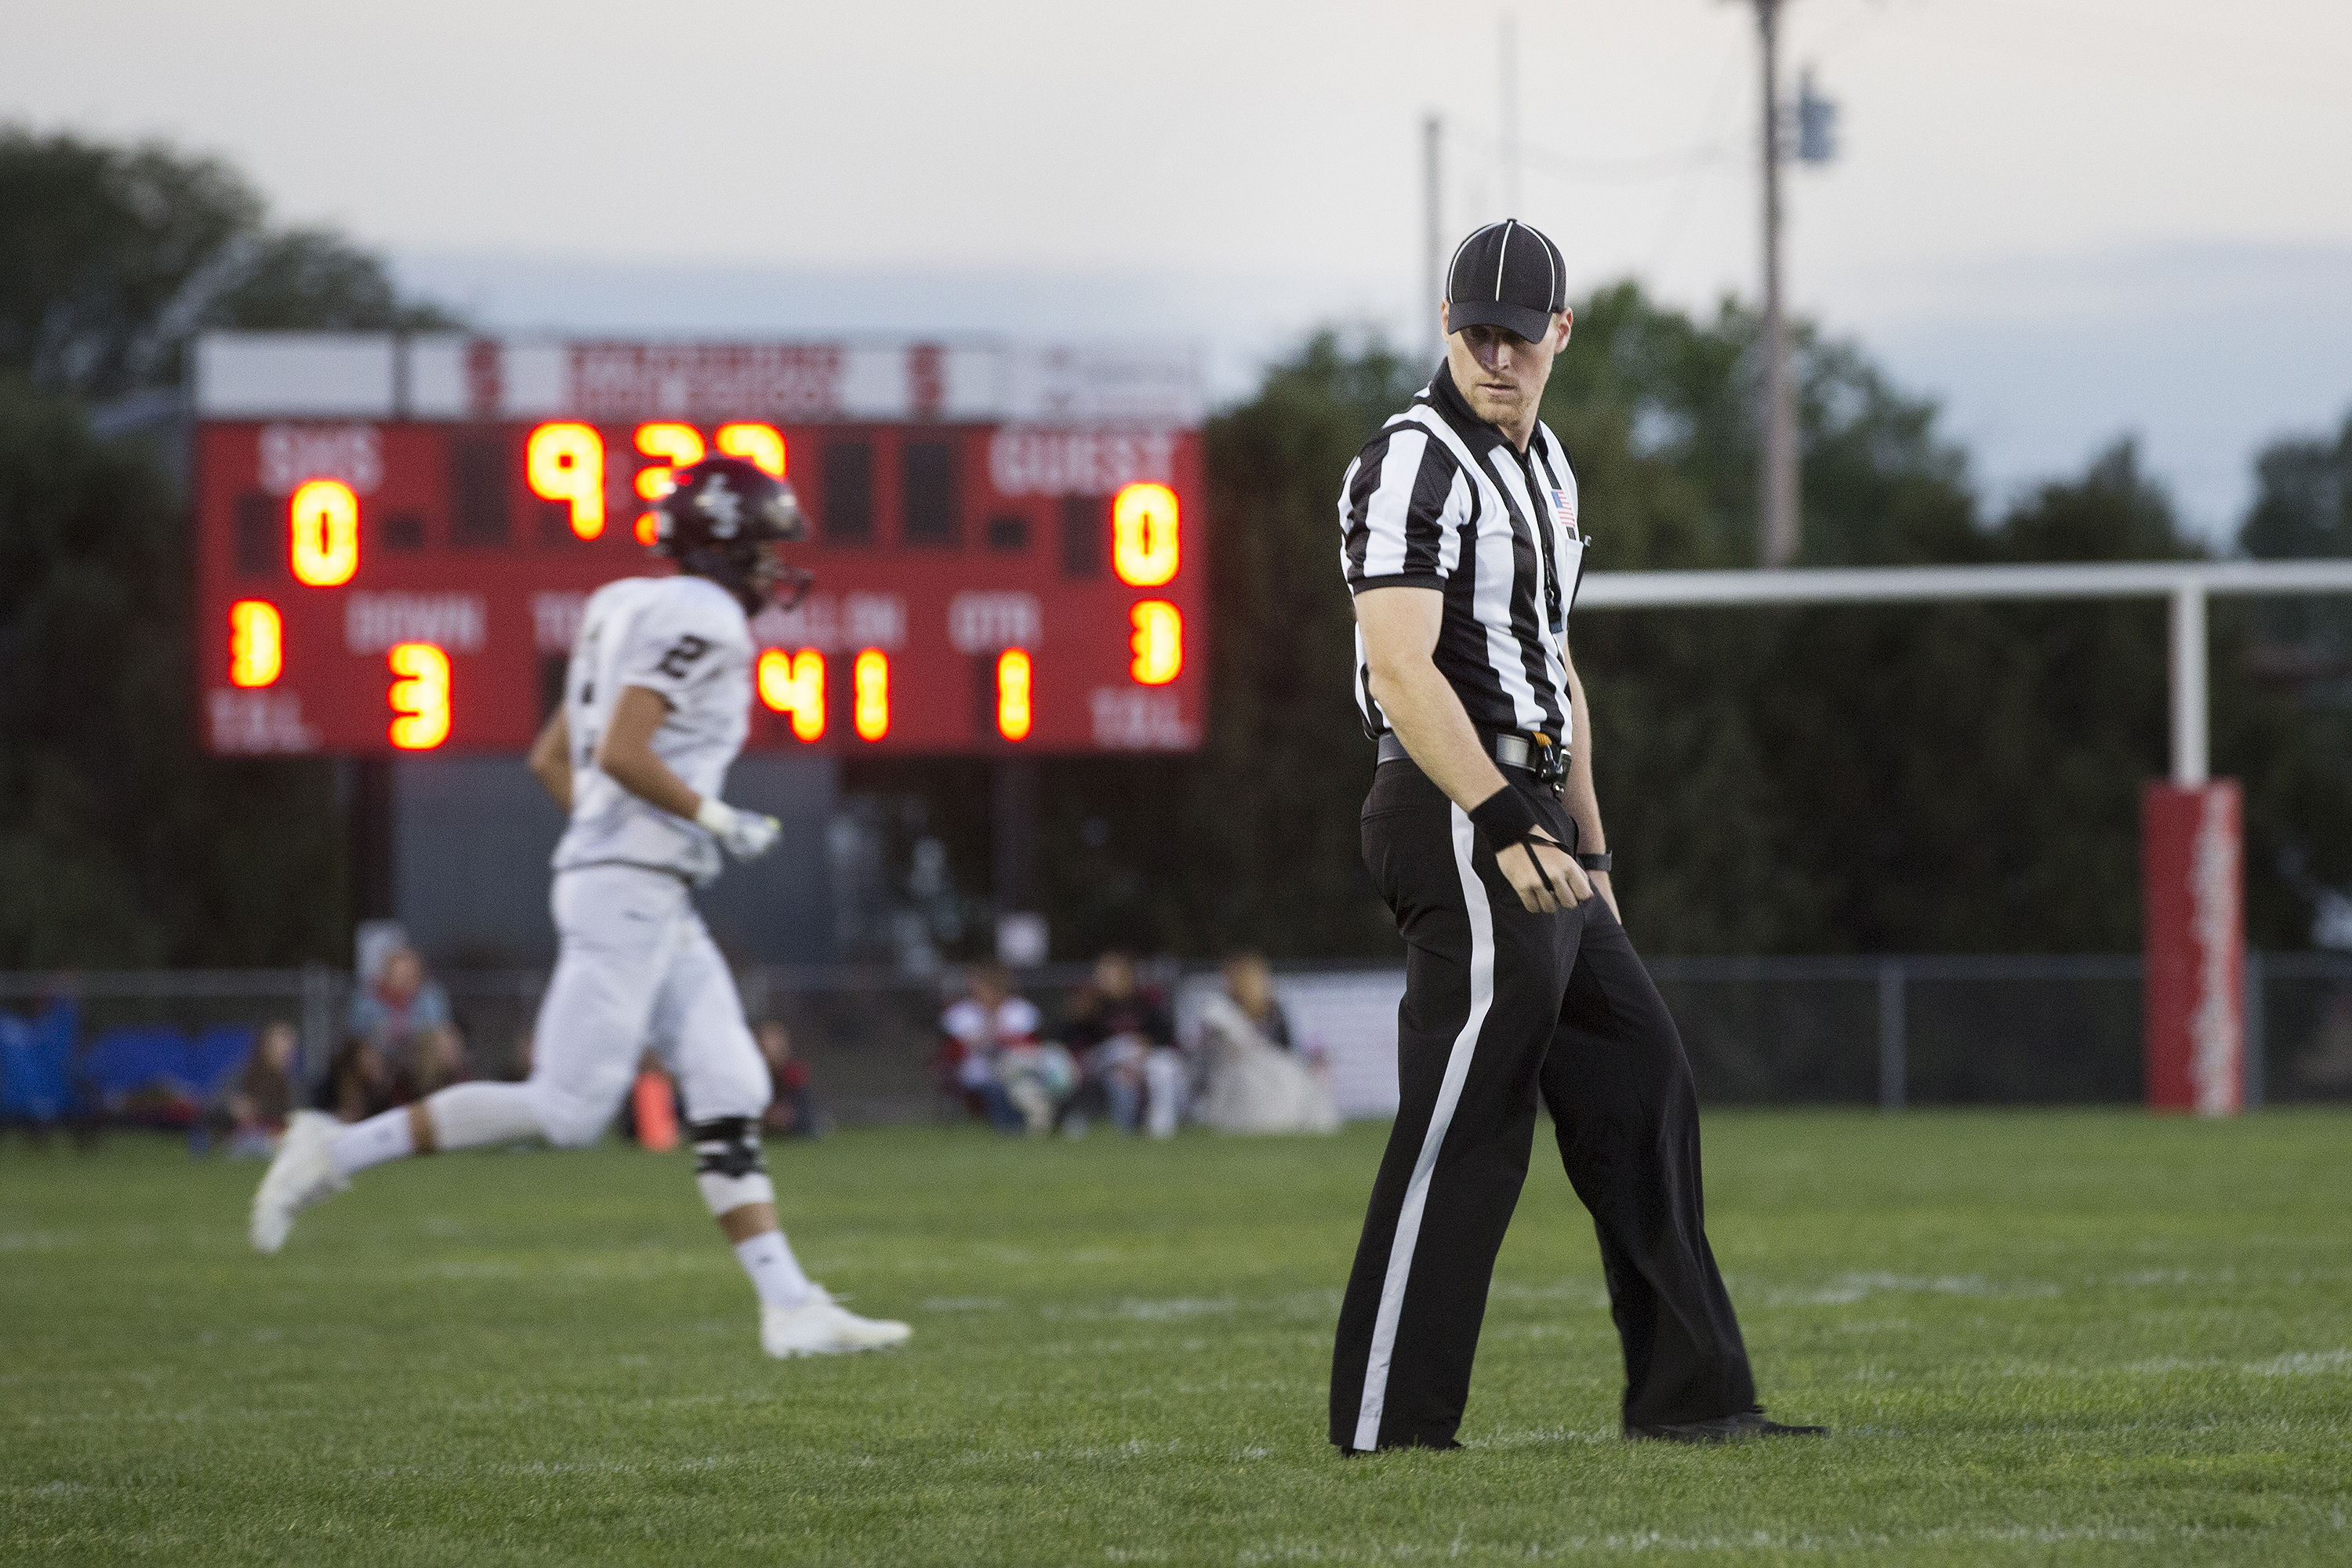 <p>Refereeinga Sept. 21 high school football match in Strasburg. The Indians were hosting the Limon Badgers.</p>